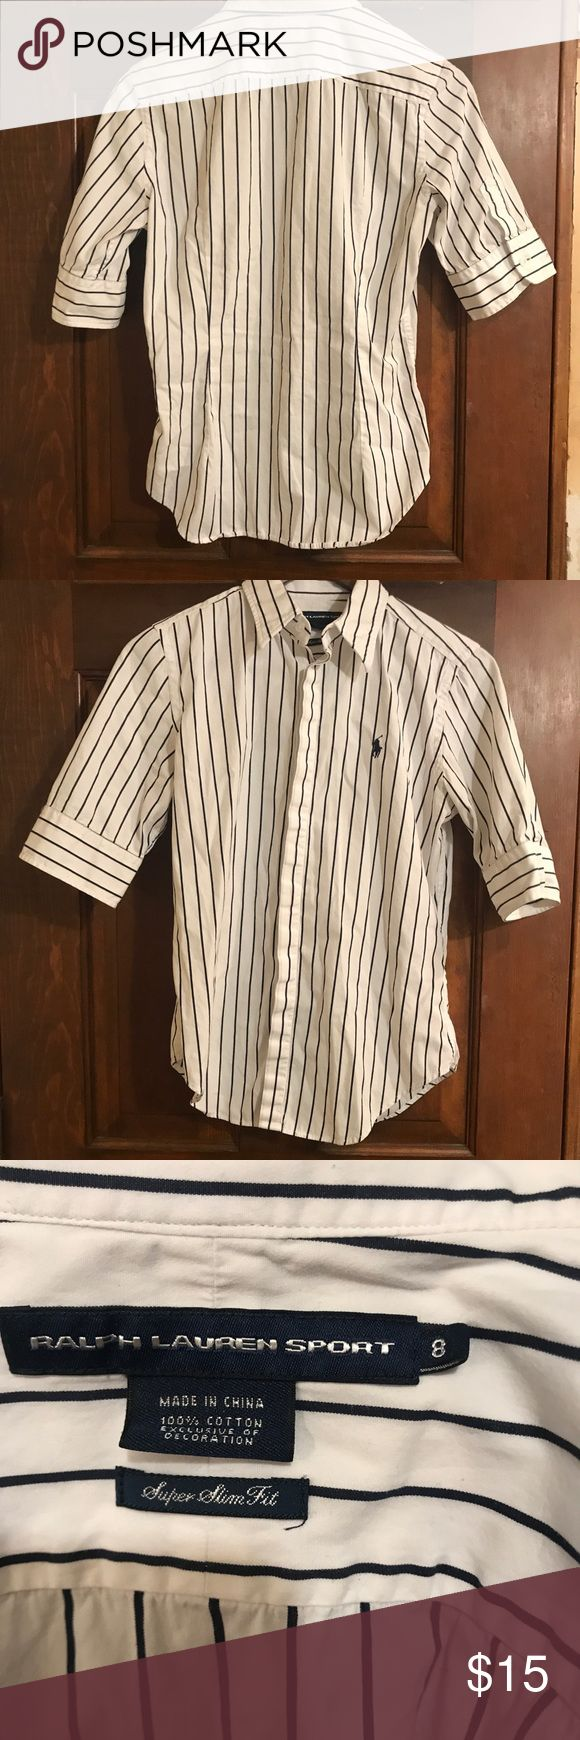 Women's polo dress shirt Size 8. Women's super slim fit dress shirt. Super soft material and semi stretchy! Worn once looks brand new. No visible flaws Ralph Lauren Black Label Tops Button Down Shirts